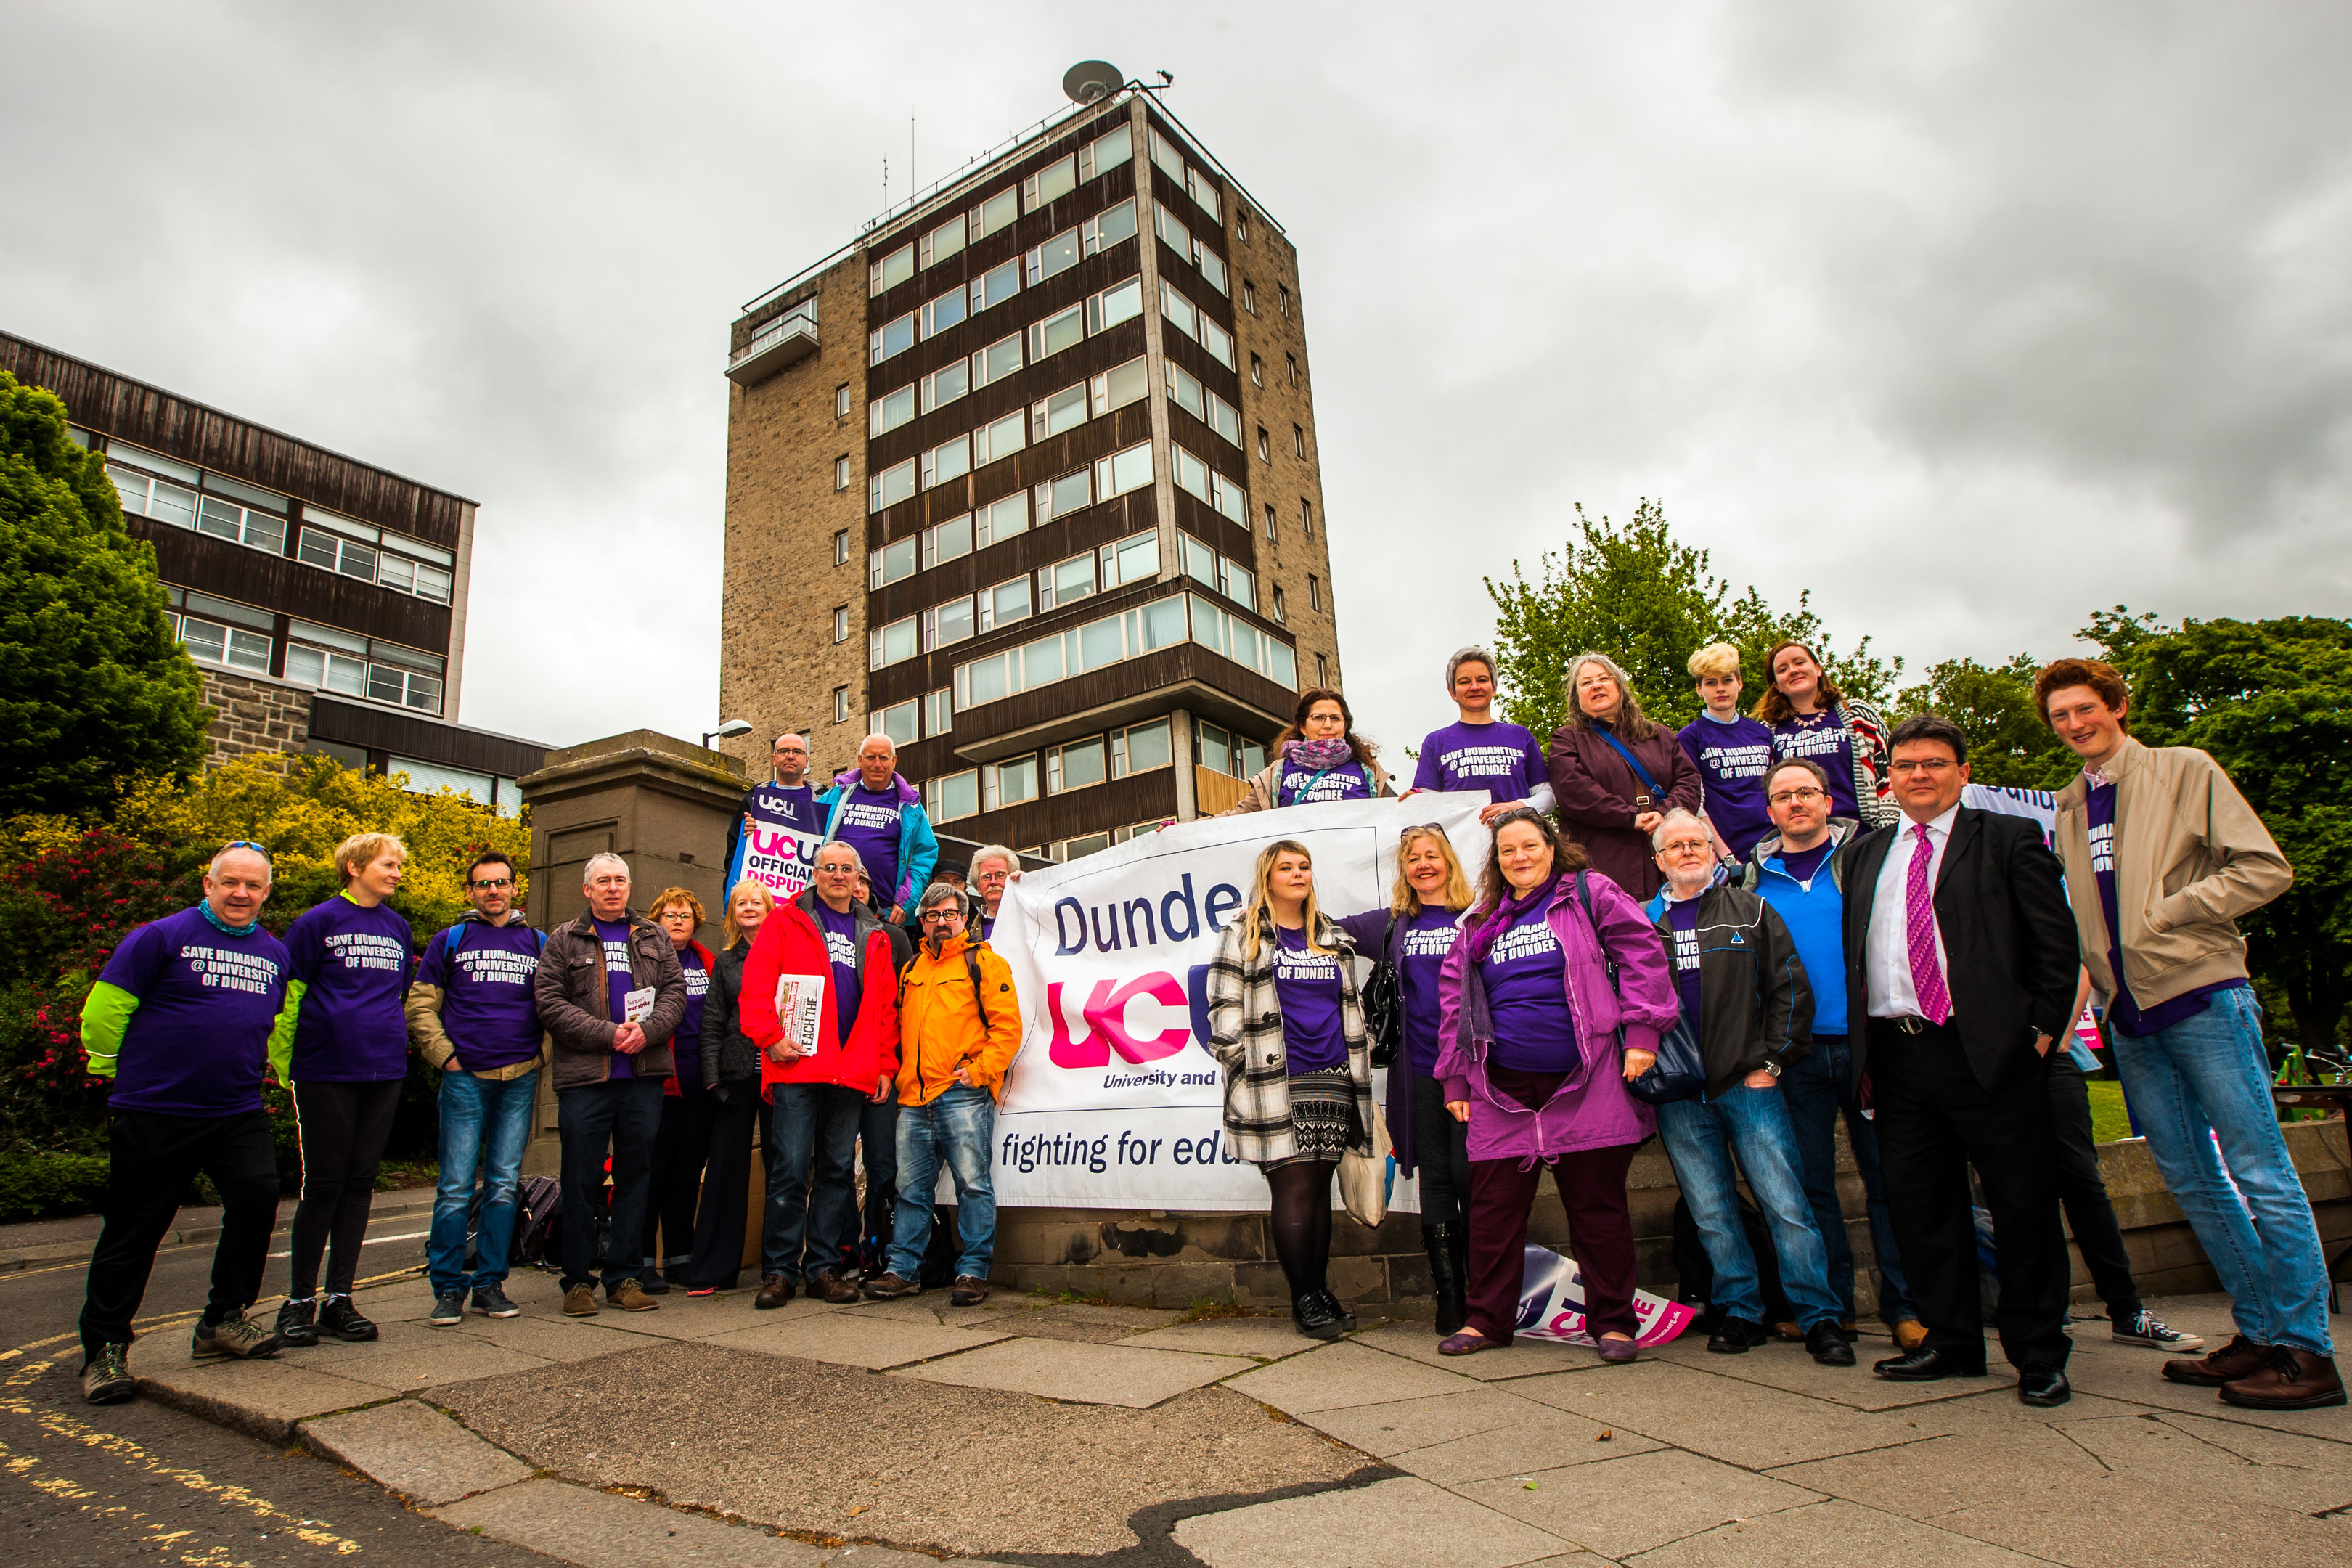 Demonstrators gather outside Dundee University's tower building.